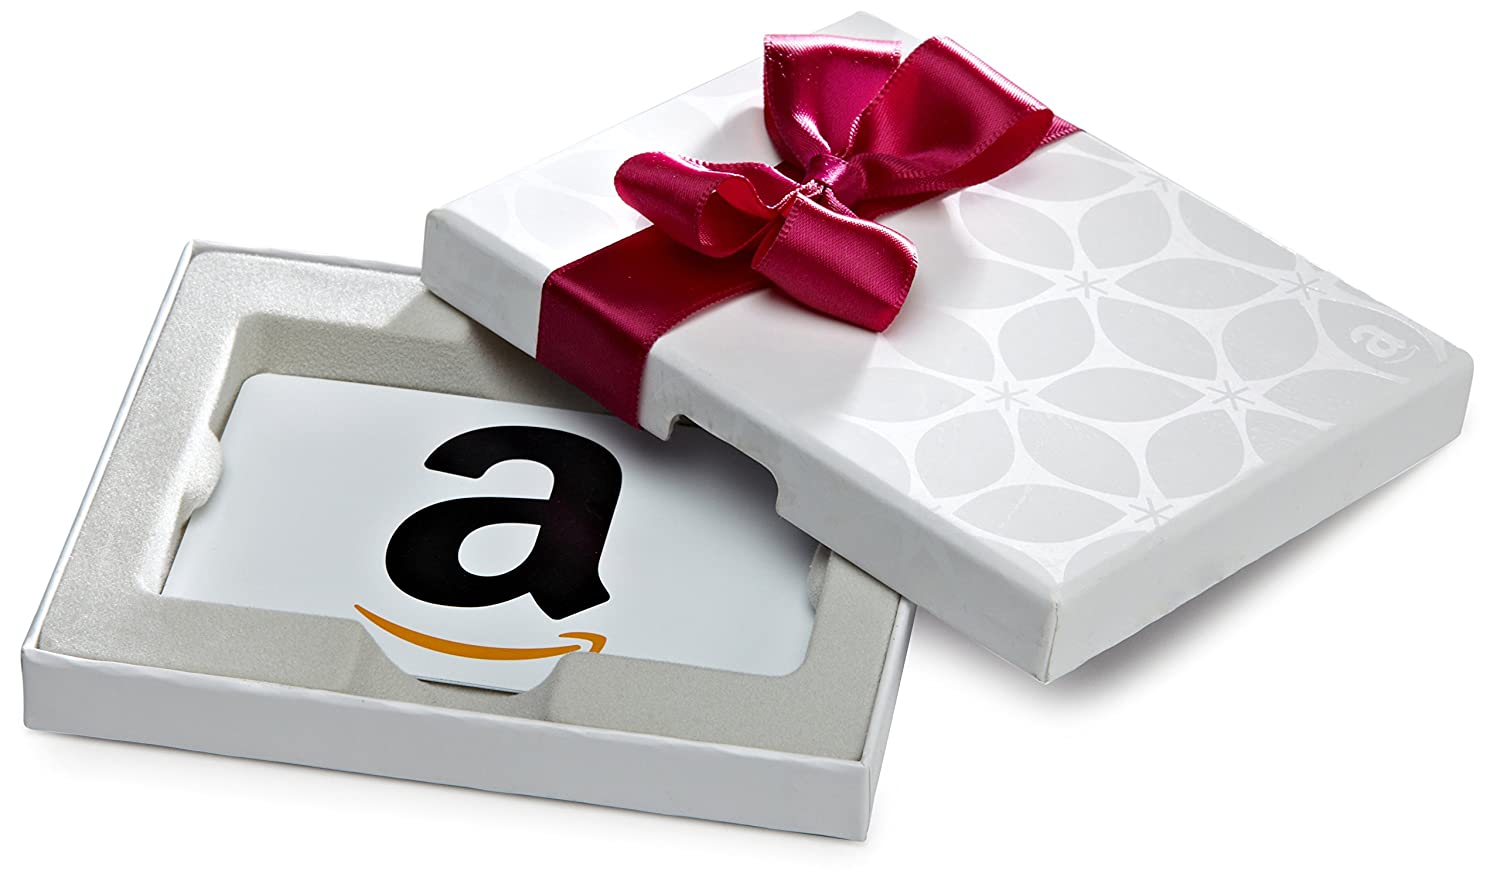 Amazon.com: Amazon.com Gift Card in a White Gift Box (Classic White ...